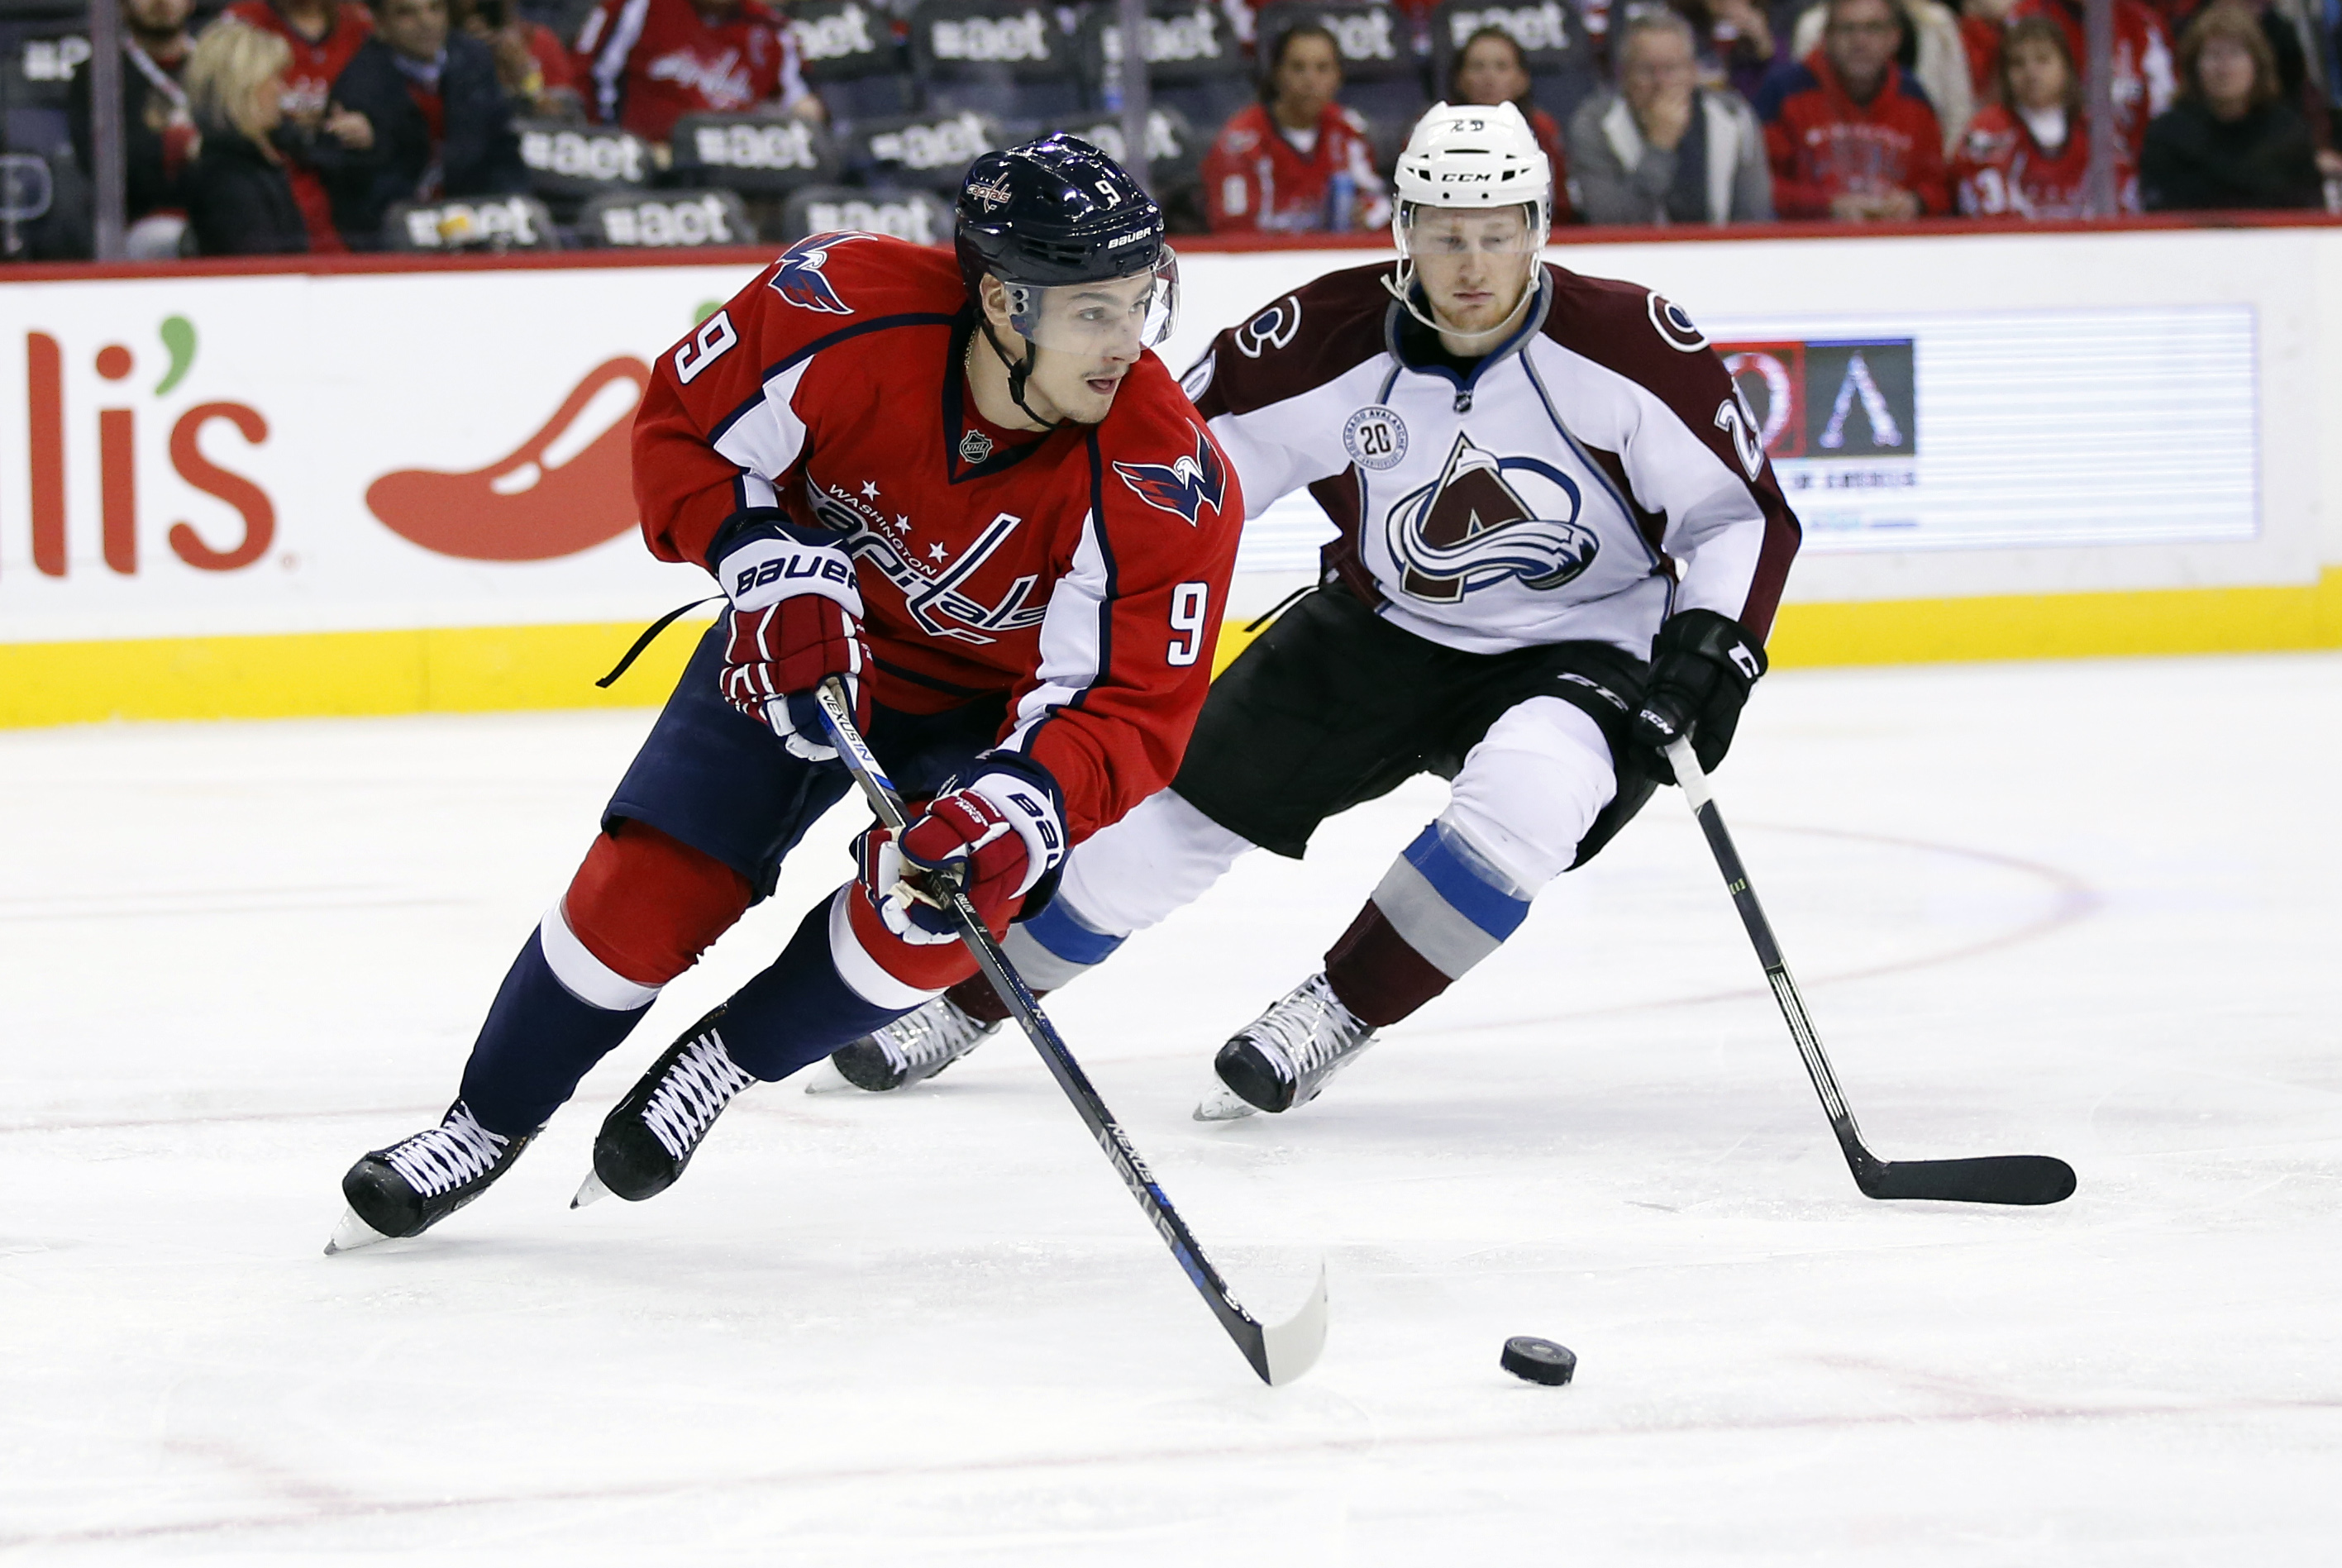 Washington Capitals defenseman Dmitry Orlov (9), from Russia, skates with the puck as Colorado Avalanche center Nathan MacKinnon (29) defends in the second period of an NHL hockey game, Saturday, Nov. 21, 2015, in Washington. (AP Photo/Alex Brandon)